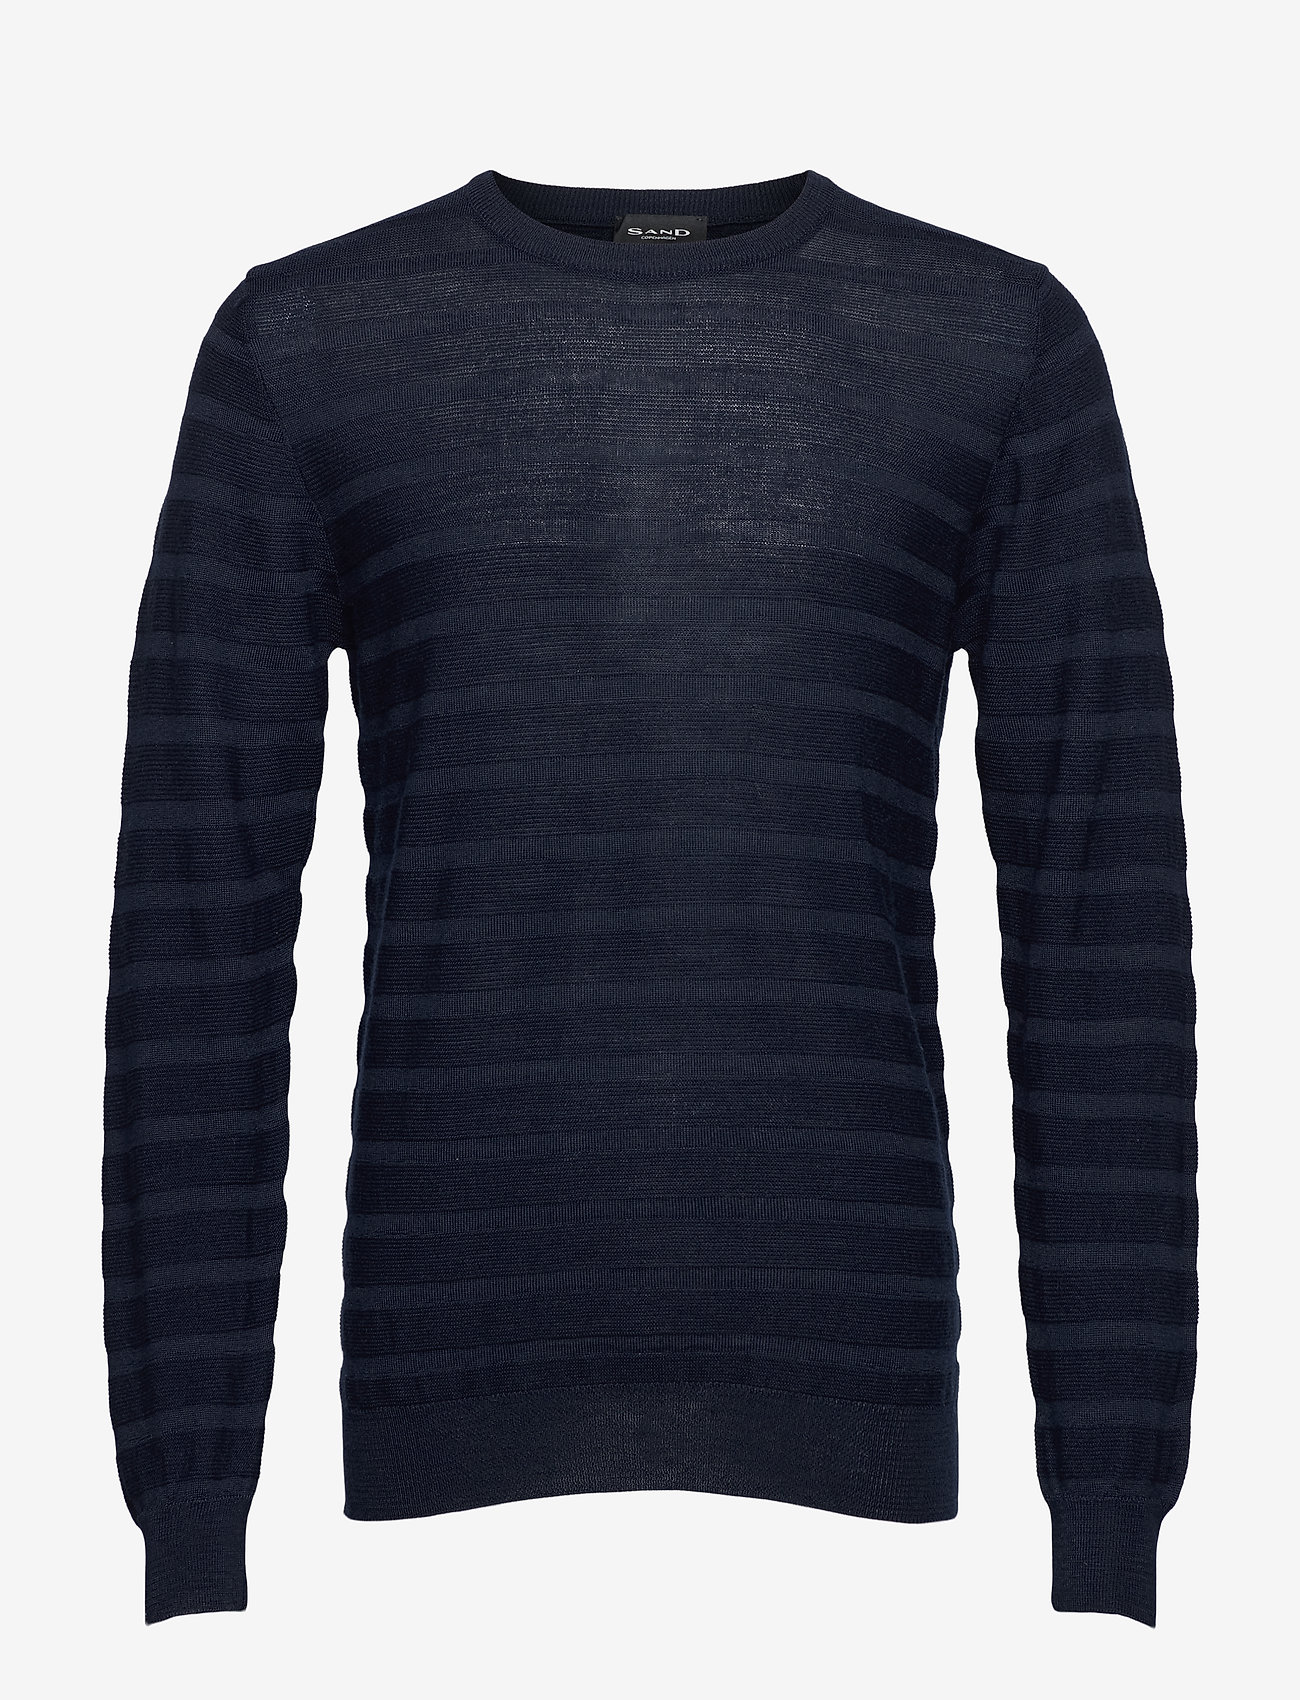 SAND - Merino Stripe - Iq - basic strik - dark blue/navy - 0